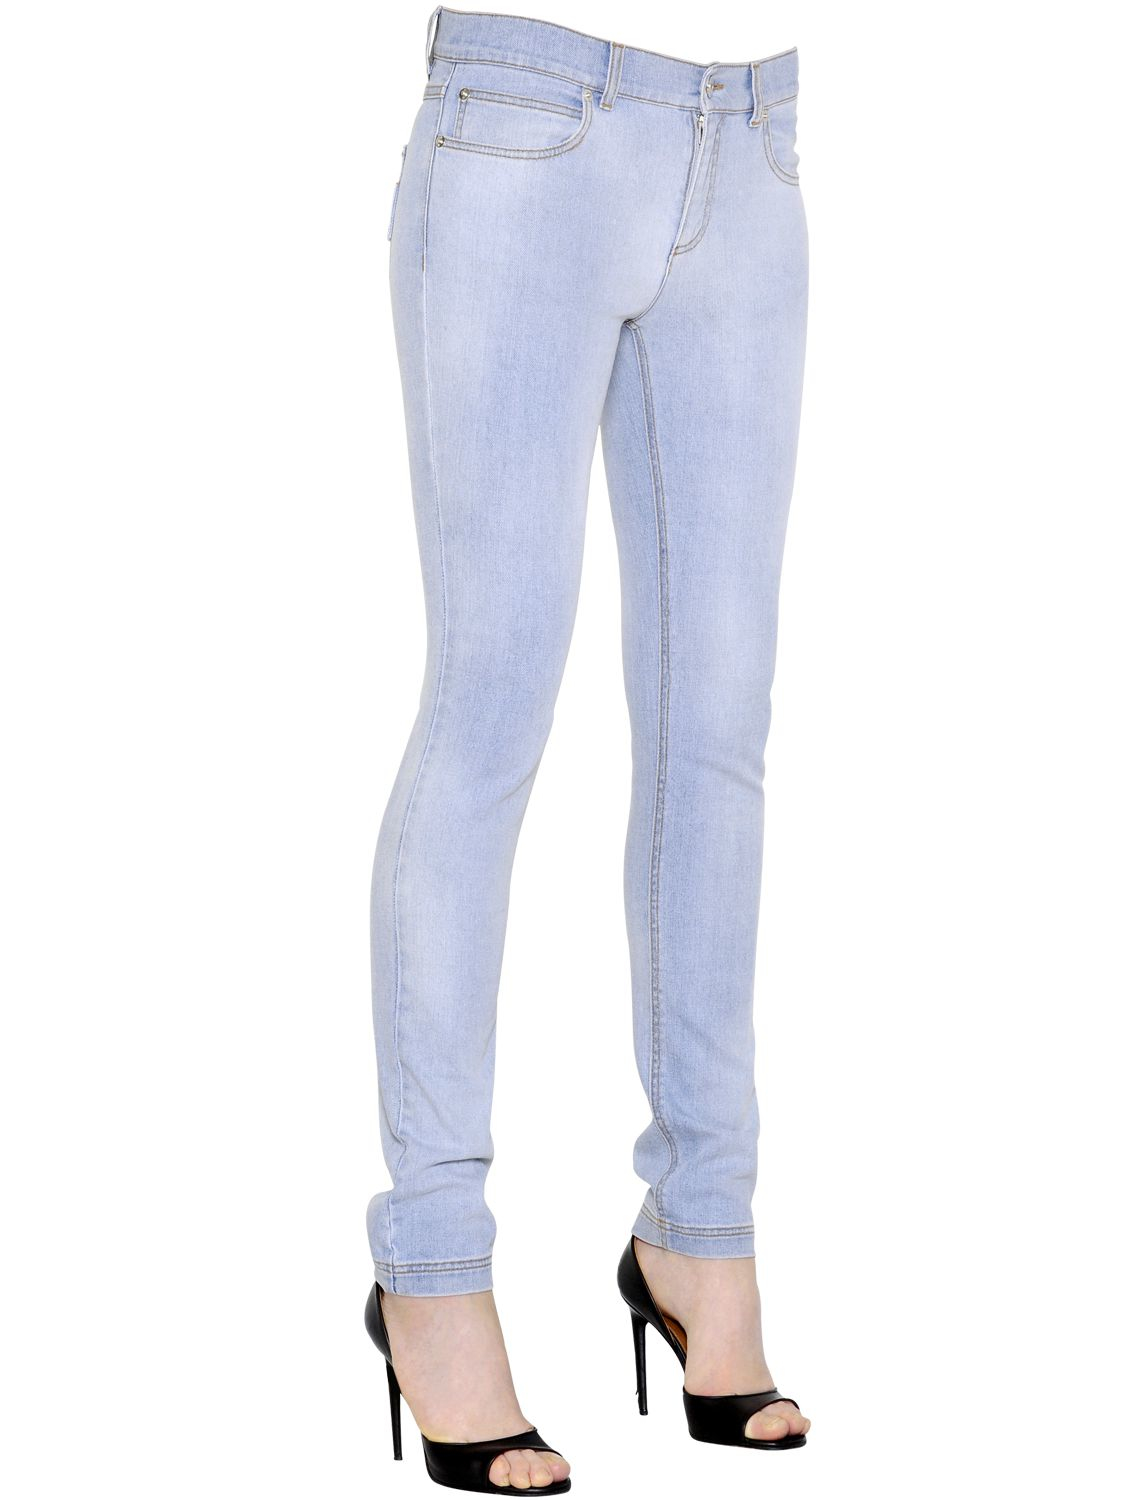 9bce3742 Lyst - Givenchy Washed Stretch Cotton Denim Jeans in Blue